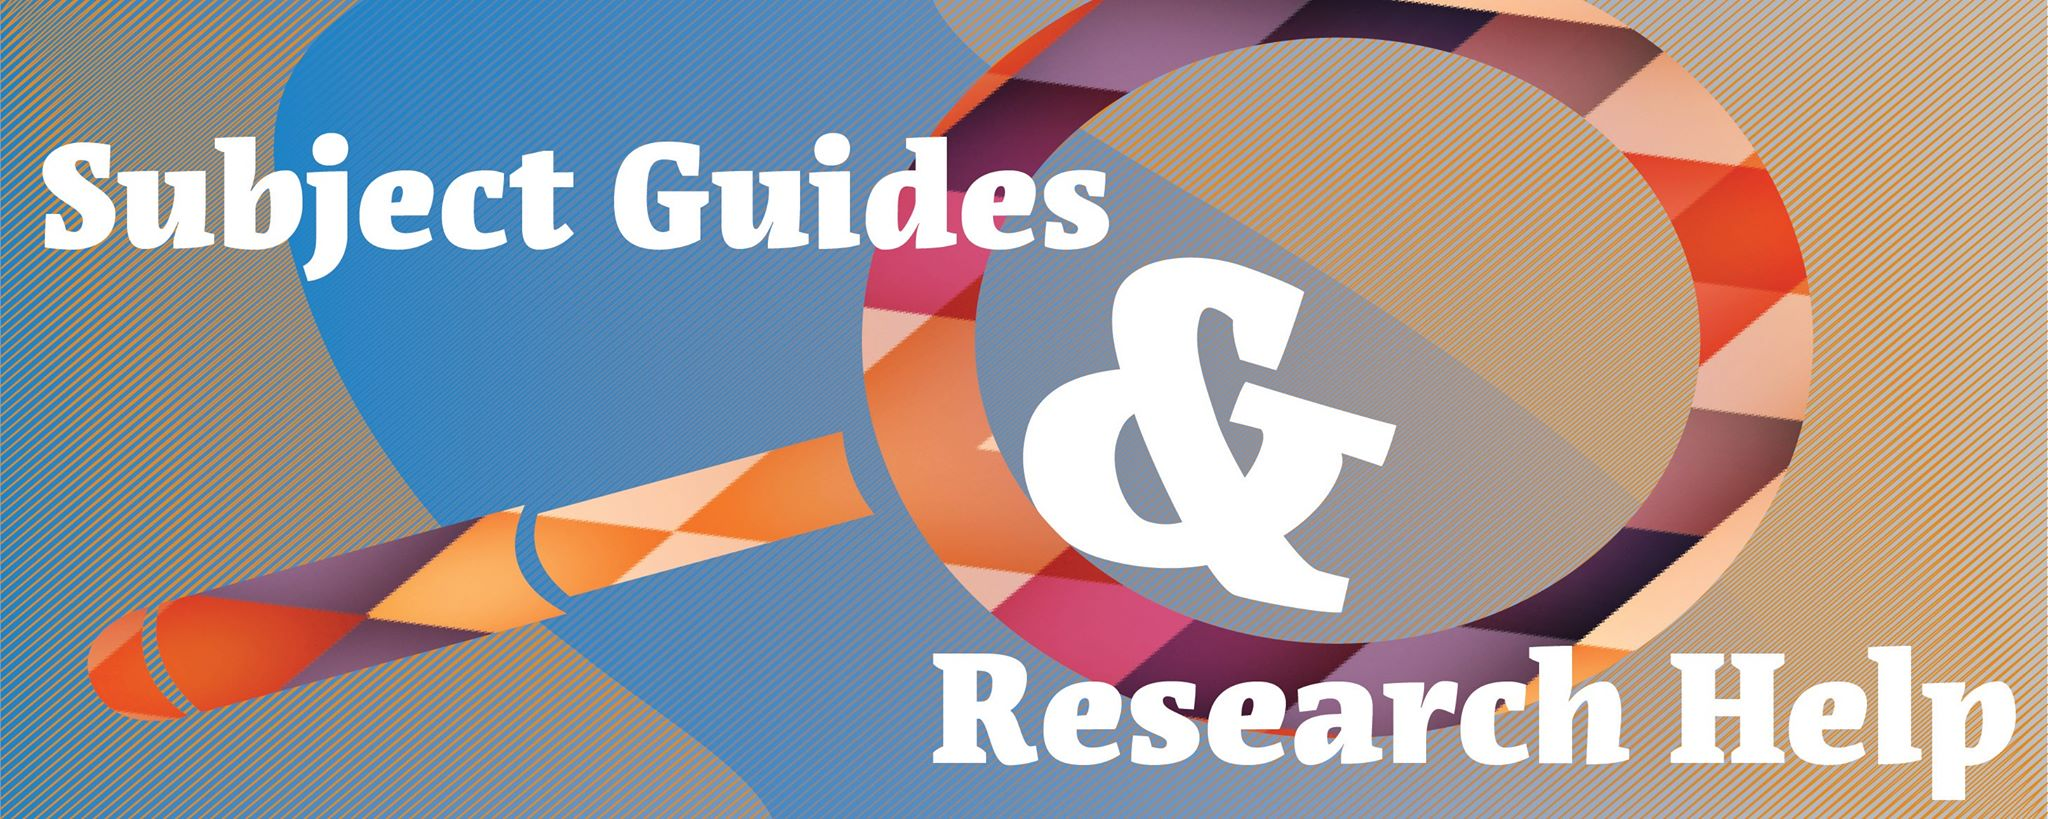 Library Subject Guides and Research Help